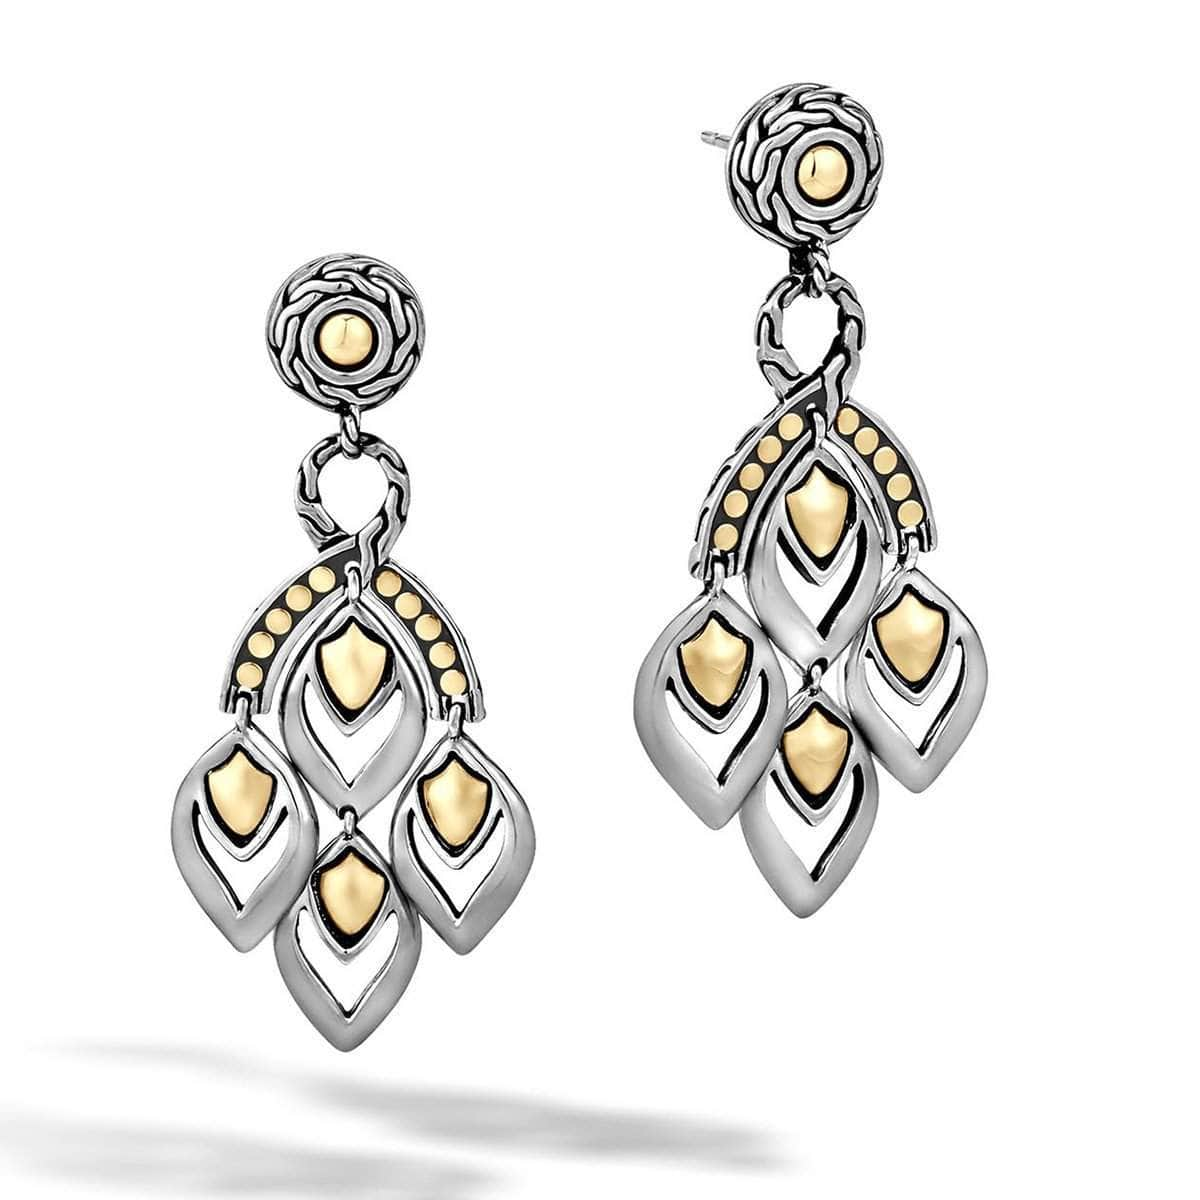 Legends Naga Gold Silver Chandelier Earrings - EZ65263-John Hardy-Renee Taylor Gallery